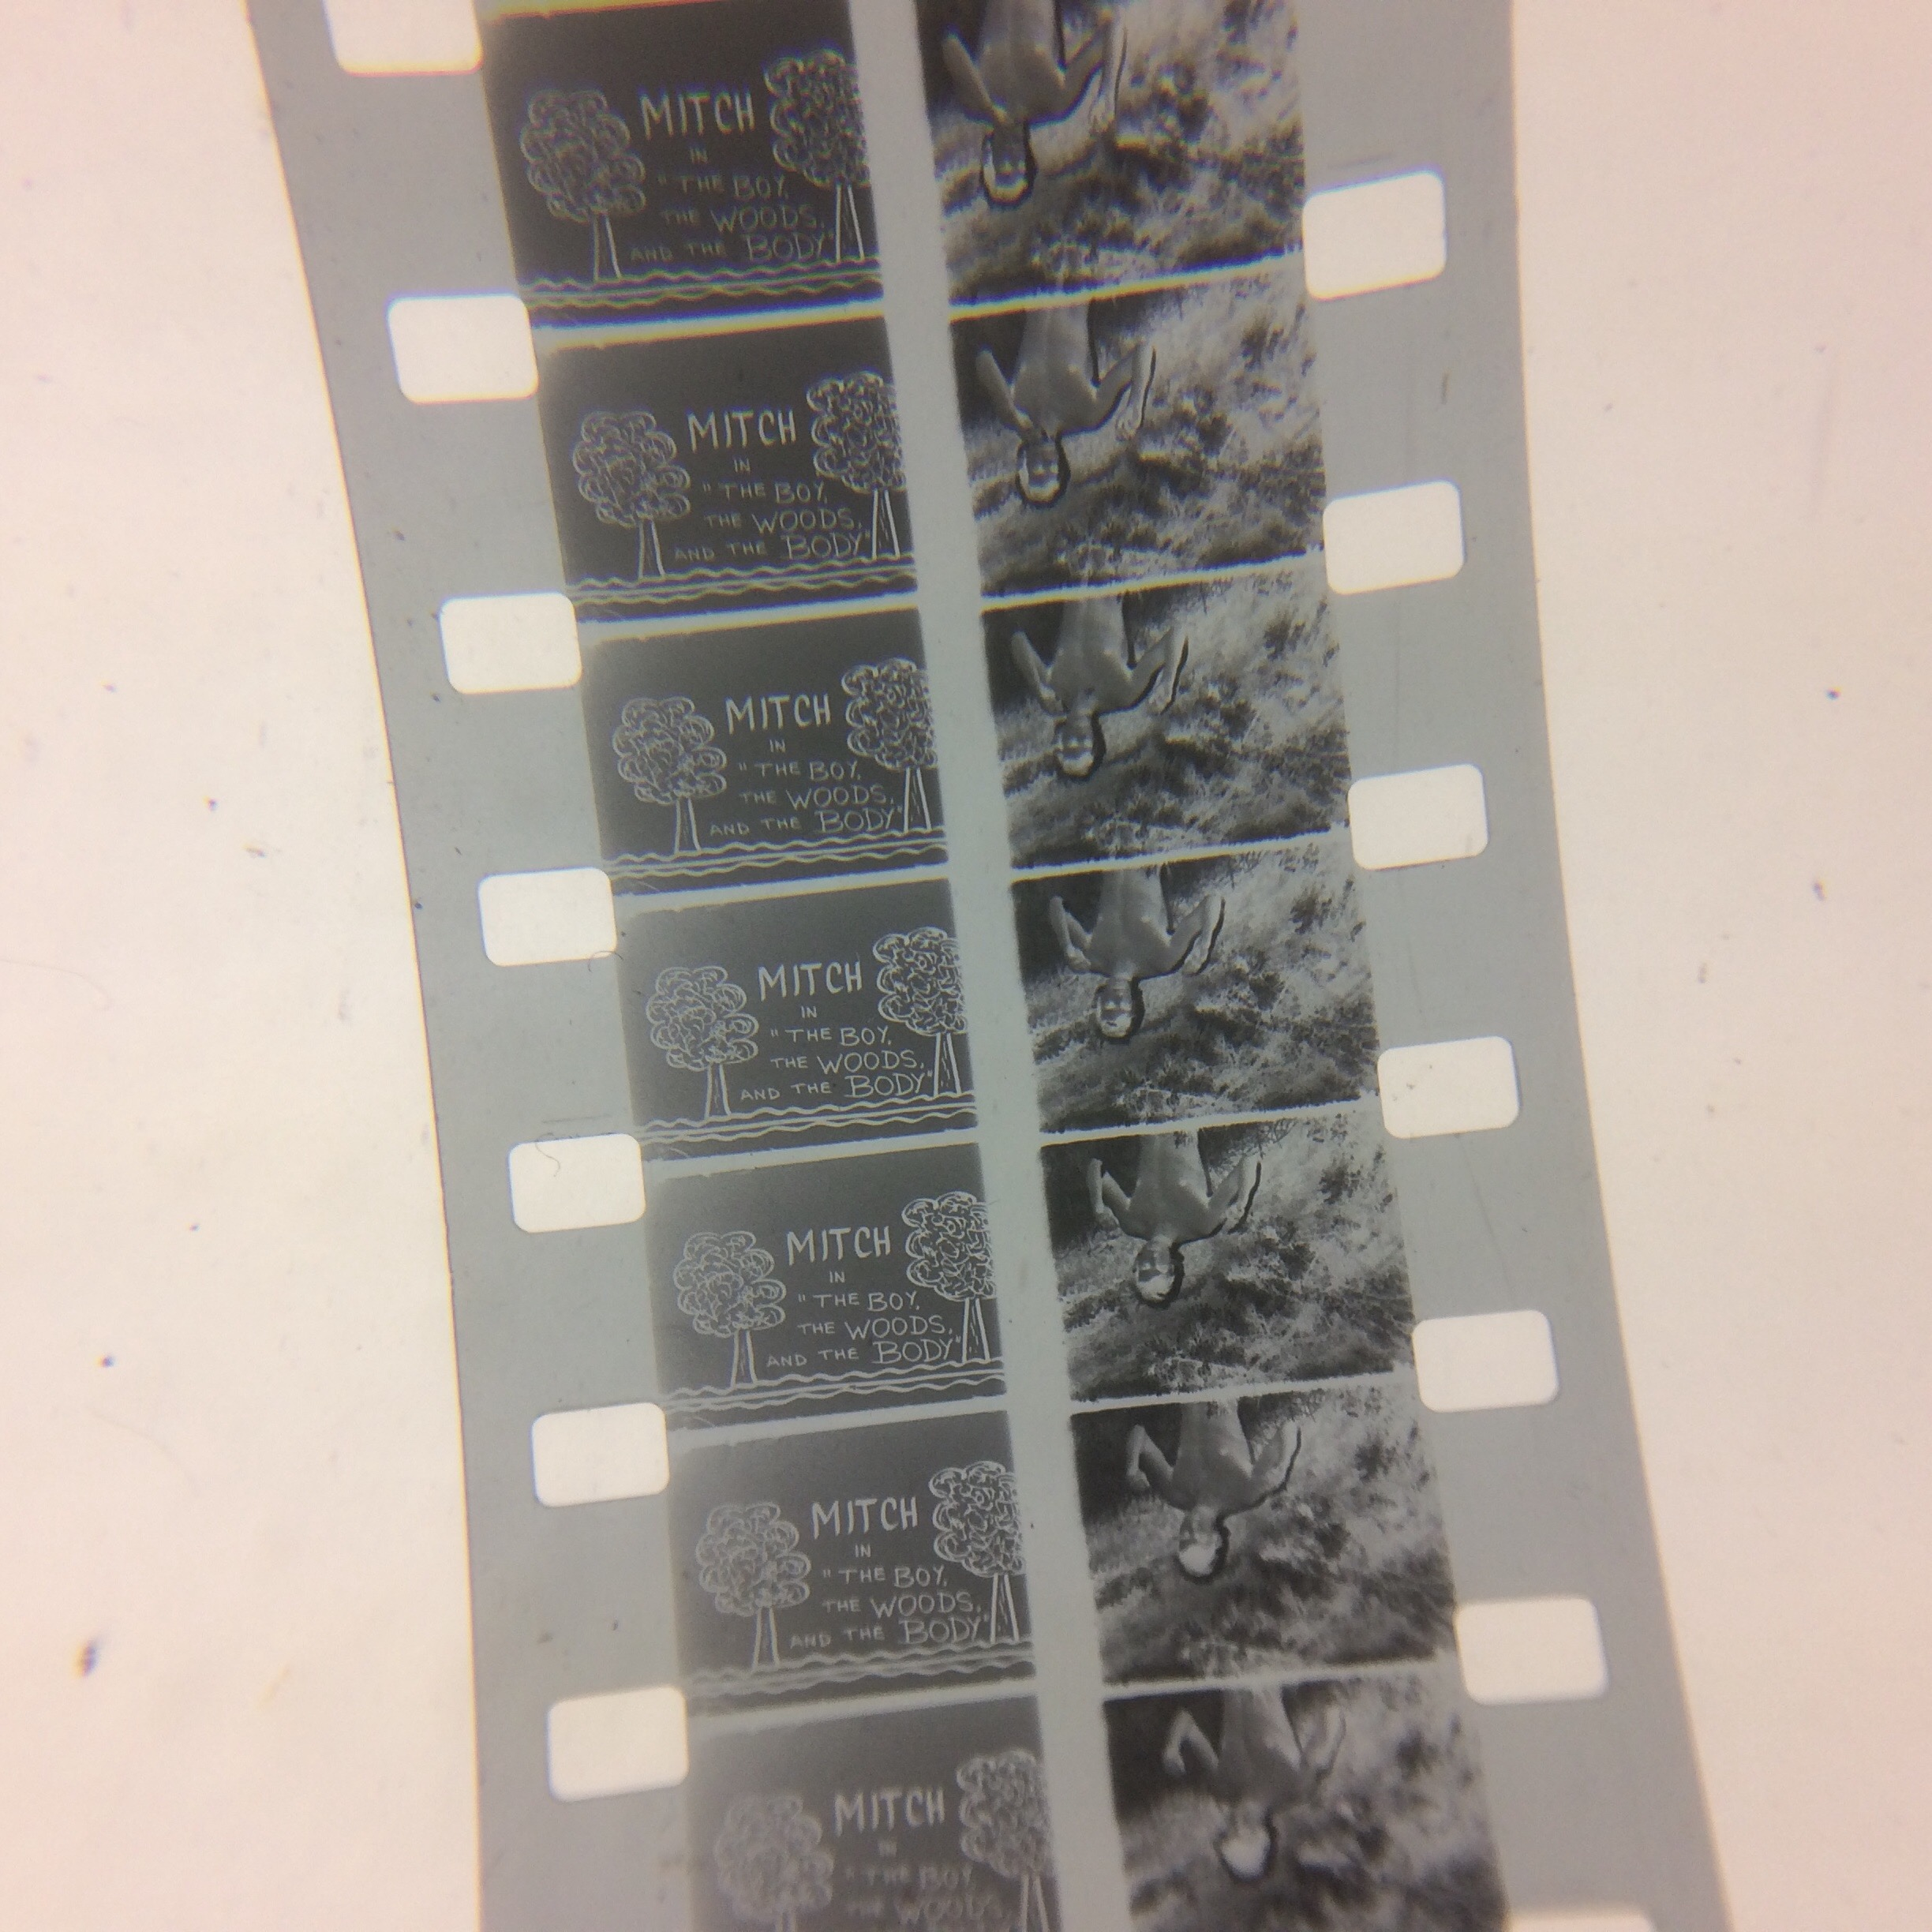 Processing the Pat Rocco Collection | UCLA Film & Television